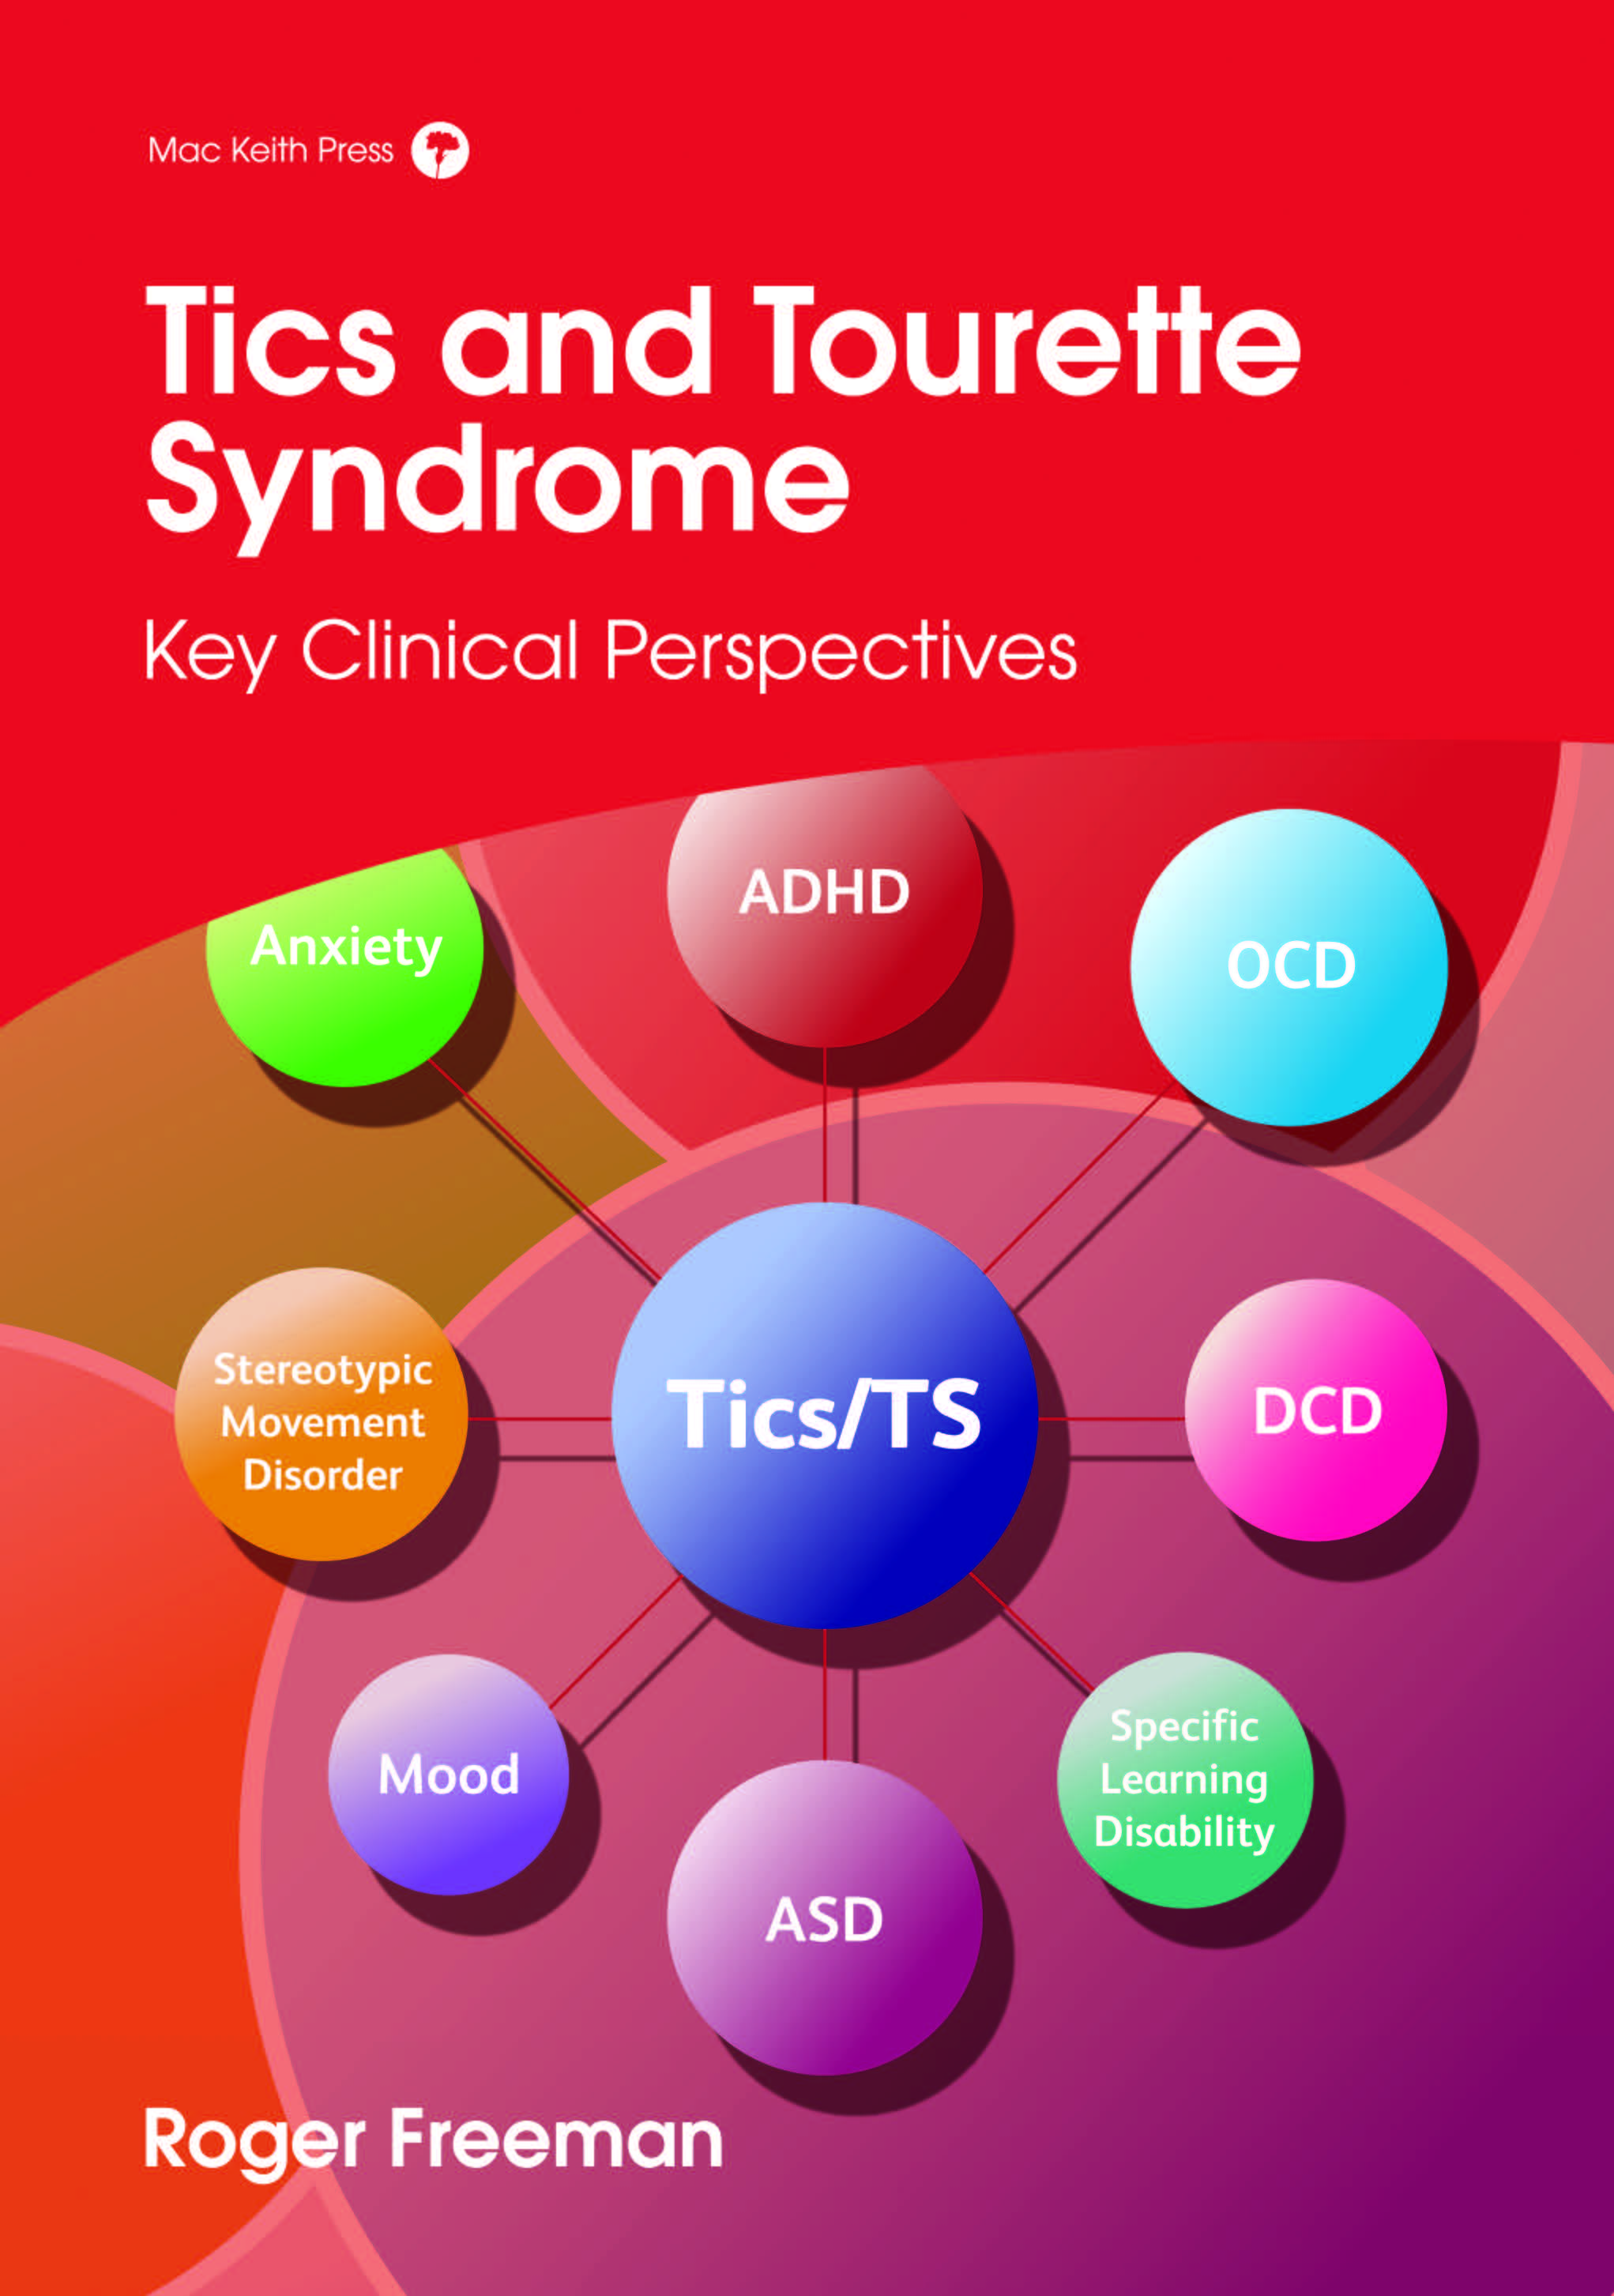 tics tourettes syndrome Tourette syndrome (ts) is a neuro developmental disorder characterized by repeated involuntary movements (motor tics) and uncontrollable sounds (vocal or phonic tics) symptoms range from very mild to quite severe and the majority of cases also have other co-morbid conditions with significant impact on their lives.